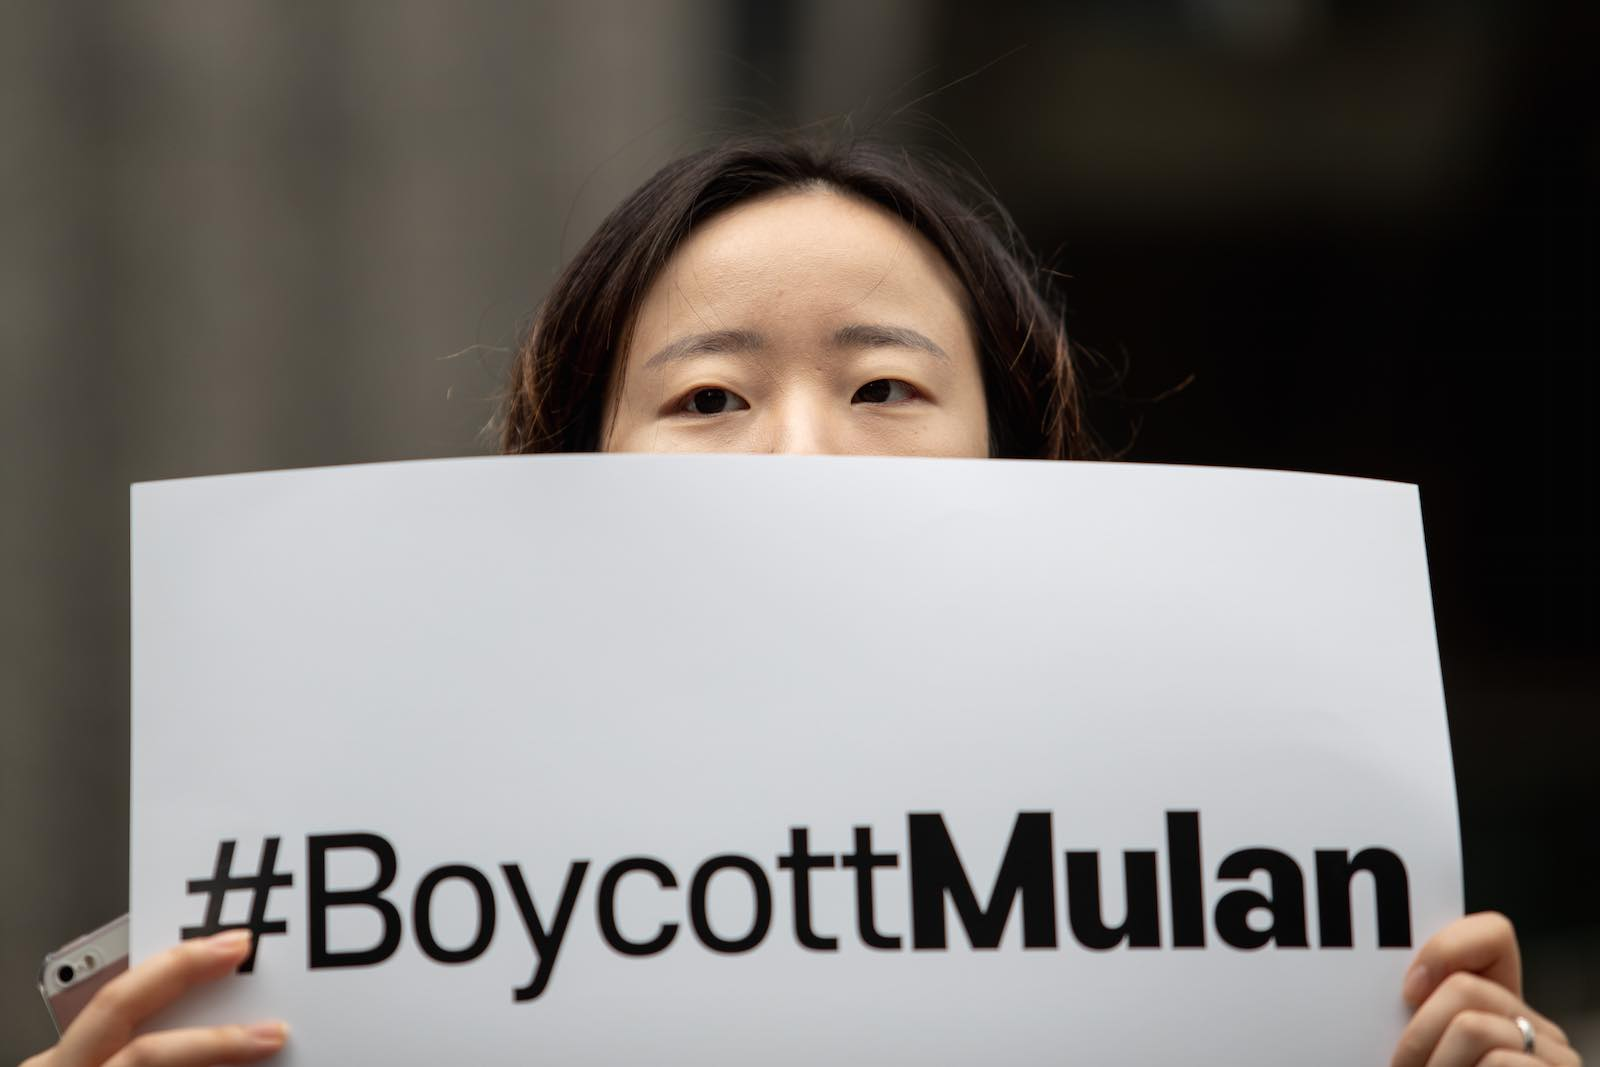 A demonstrator in South Korea in July calling for a boycott of the new Disney film Mulan (Chris Jung/NurPhoto via Getty Images)